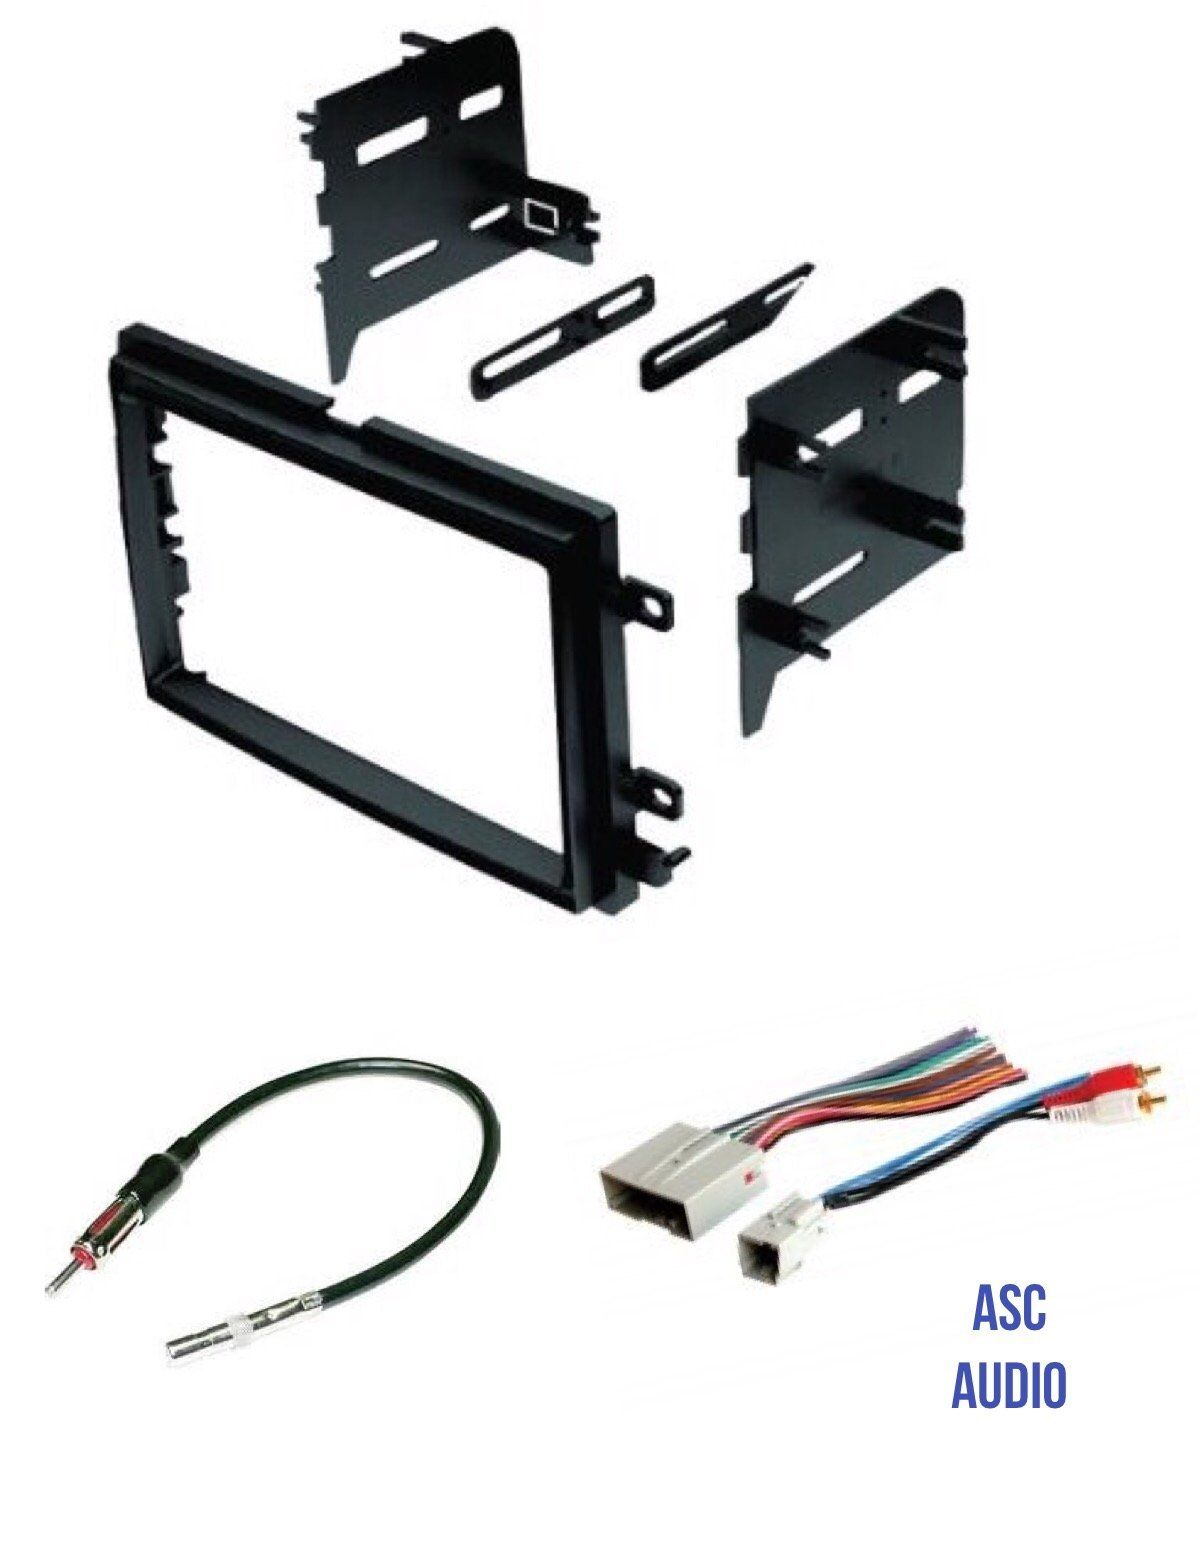 asc audio car stereo radio install dash kit wire harness and antenna adapter to install a double din radio for some ford lincoln mercury vehicles  [ 1200 x 1558 Pixel ]